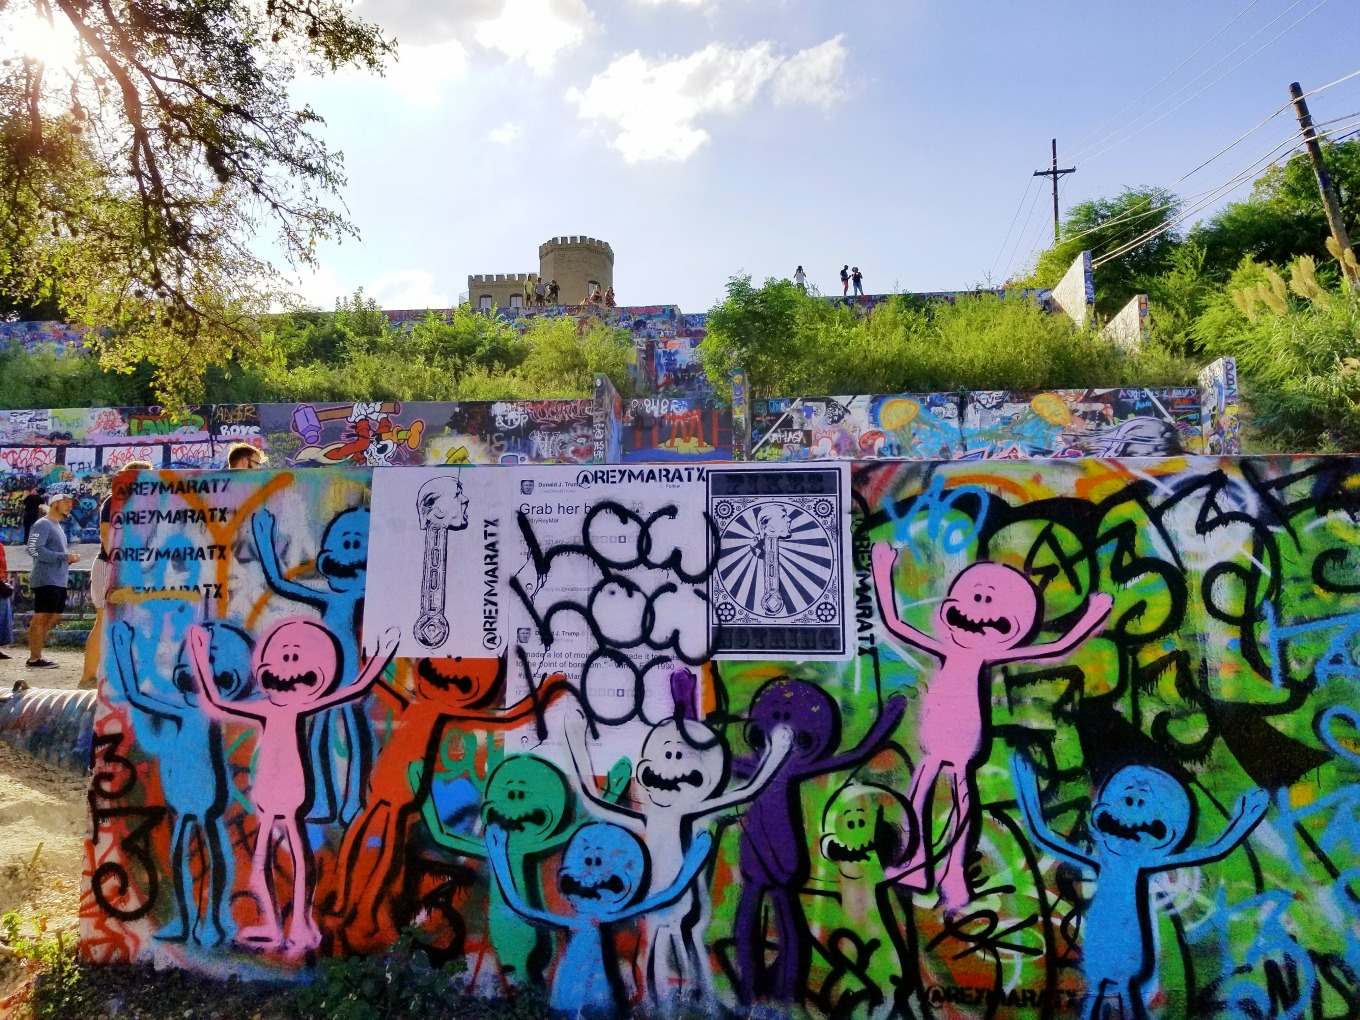 Mr. Meeseeks graffiti mural at the Hope Outdoor Gallery in Austin, Texas